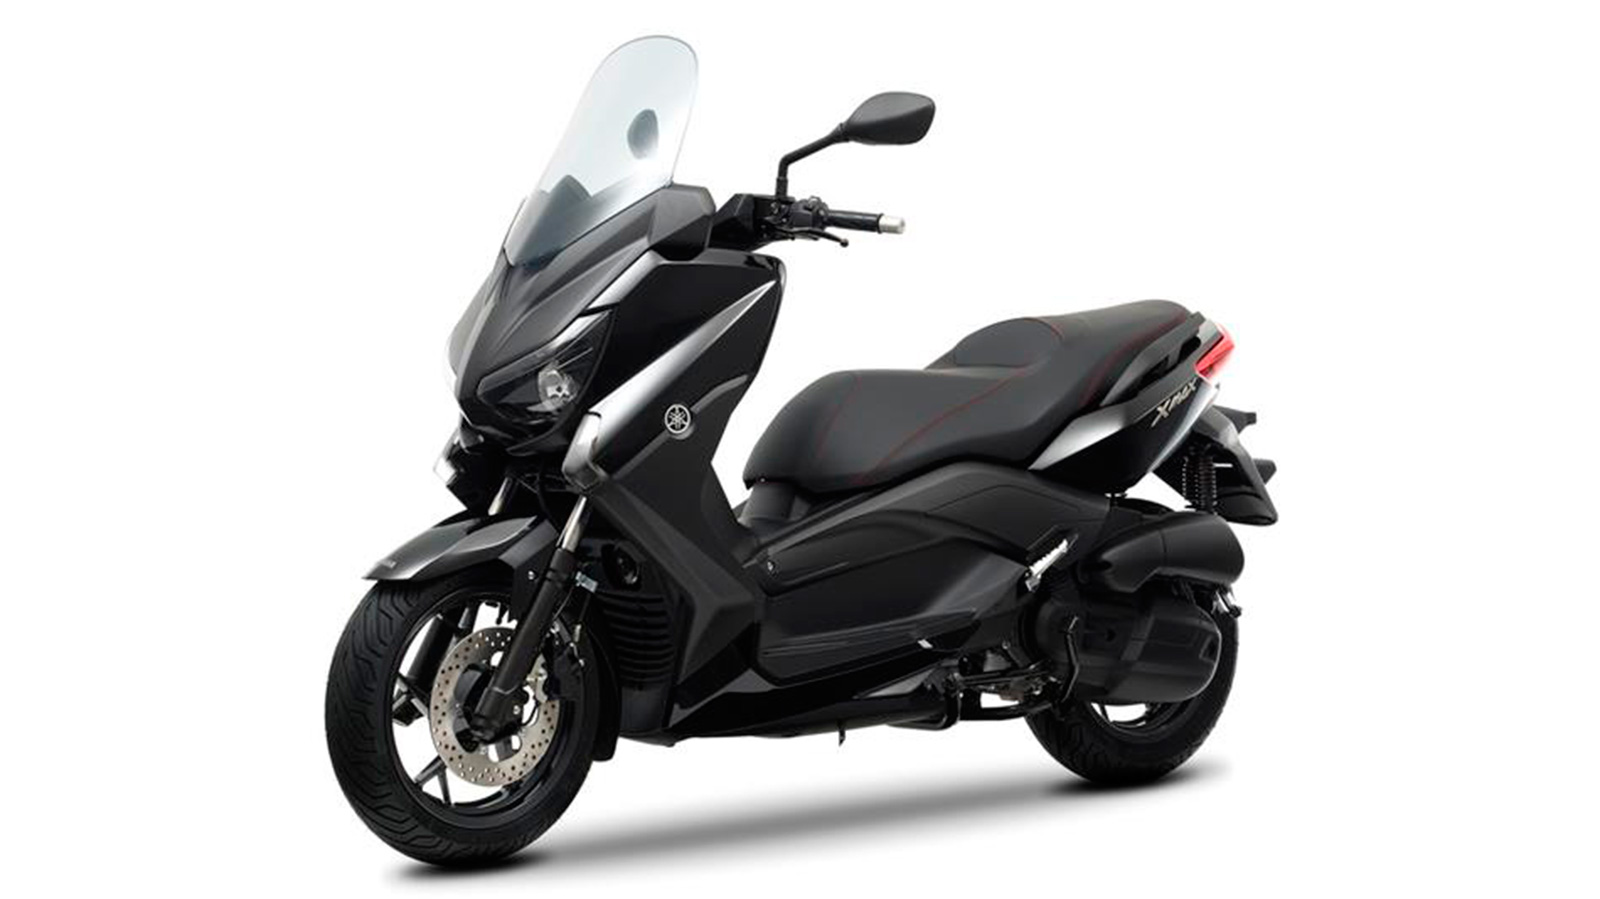 foto yamaha xmax 125 abs 2014 frontal izquierdo 21. Black Bedroom Furniture Sets. Home Design Ideas